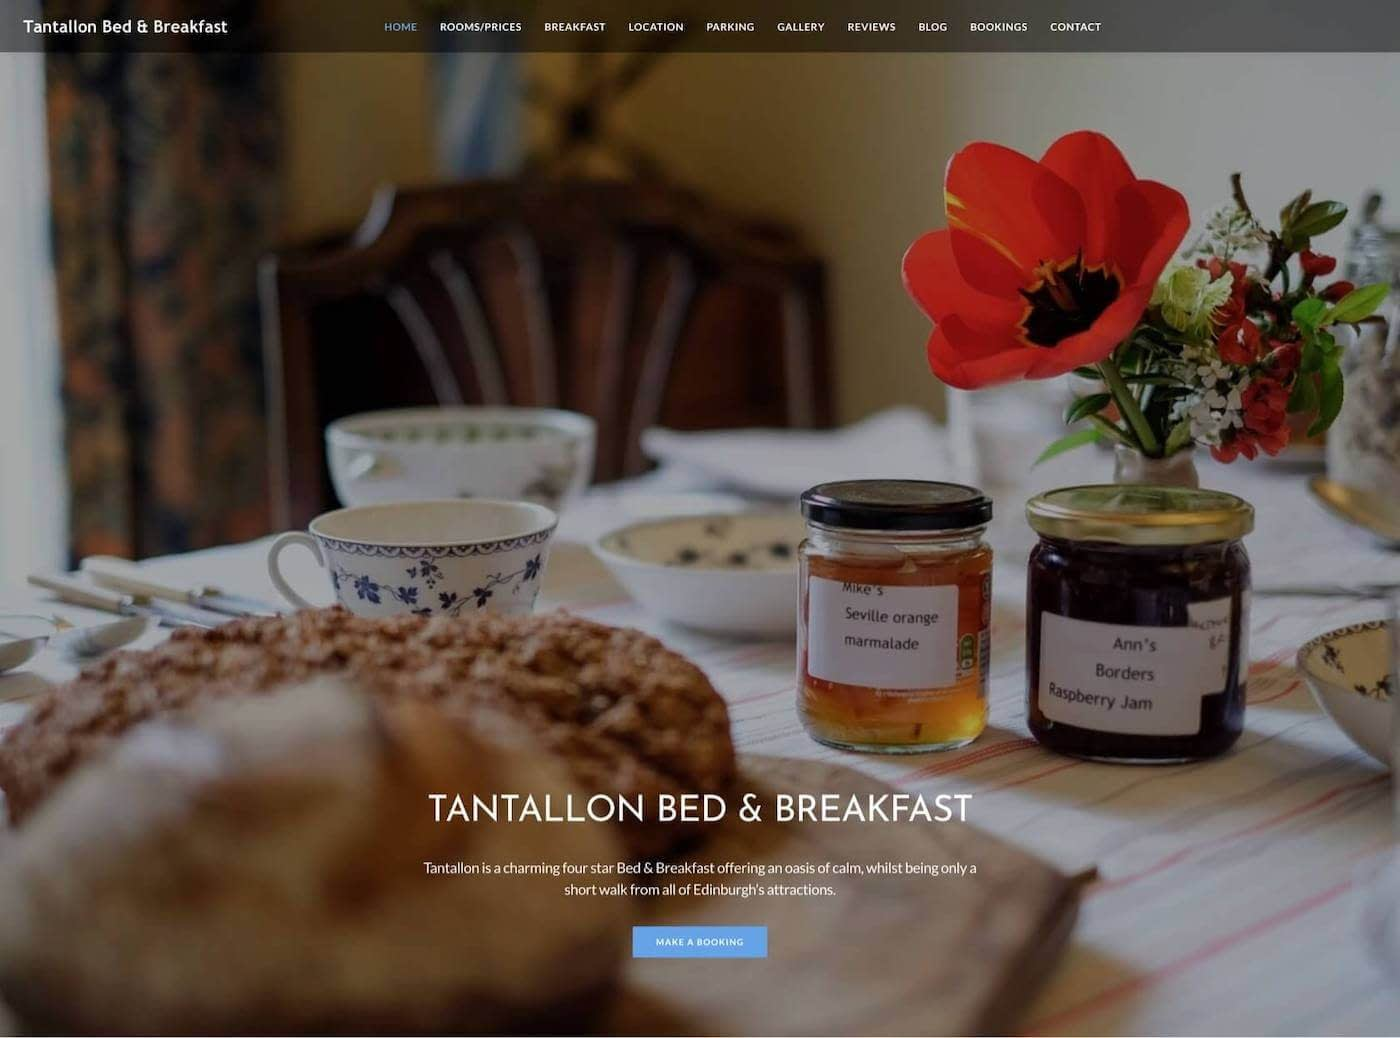 Web design for Tantallon Place B&B, Edinburgh